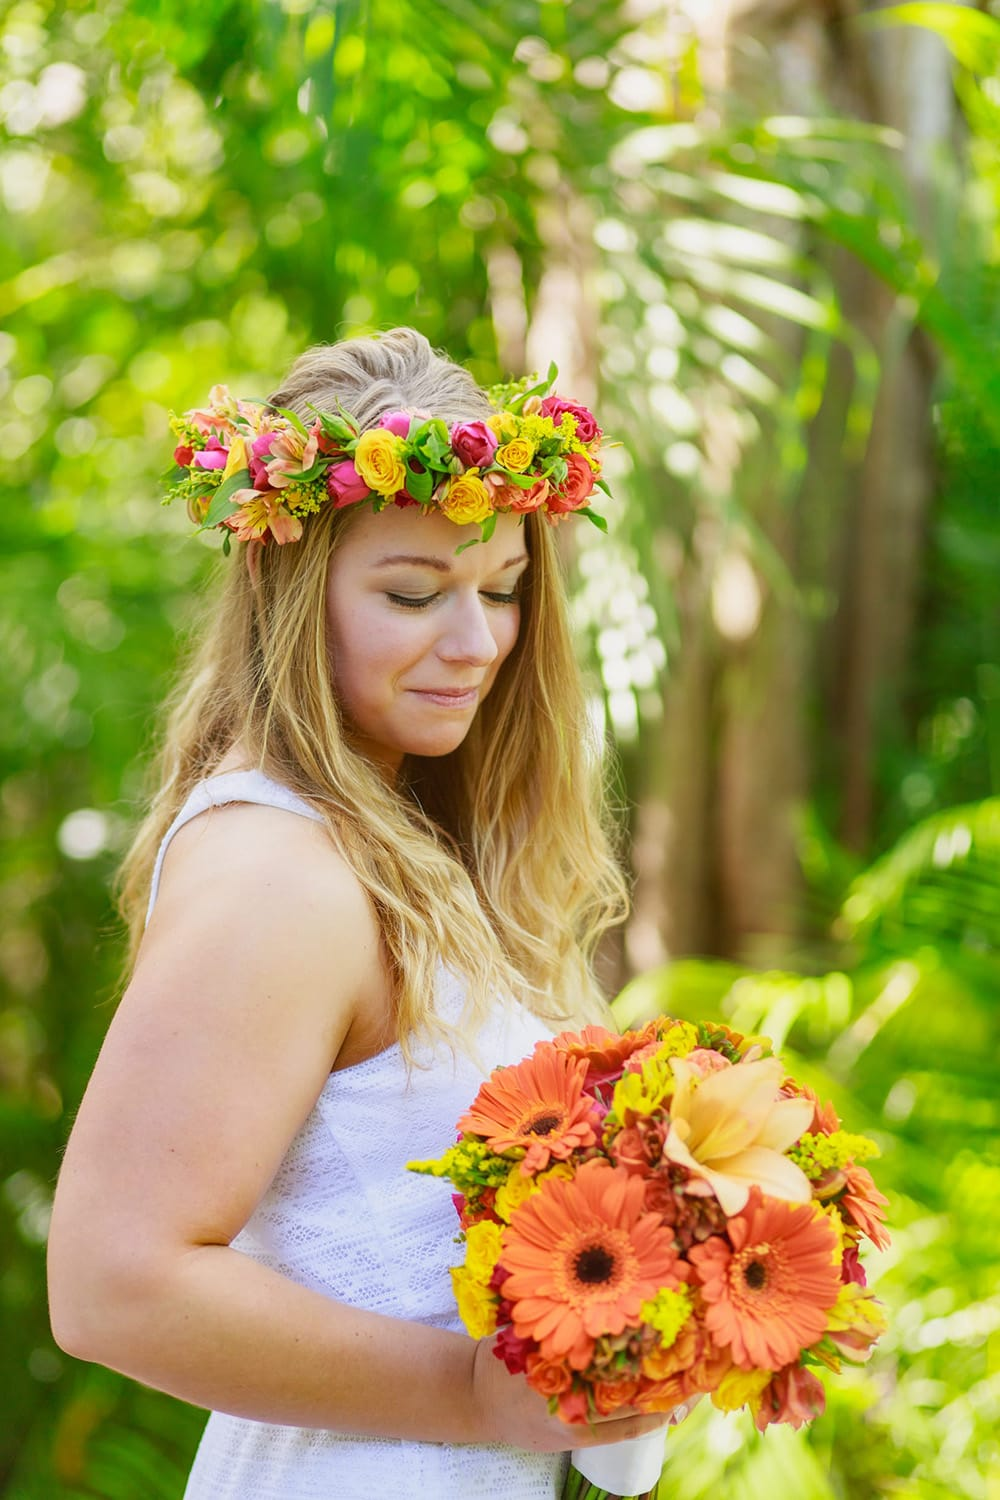 Tropical and colourful flower crown and bouquet for bride at her beach wedding designed by Adventure Weddings' florist